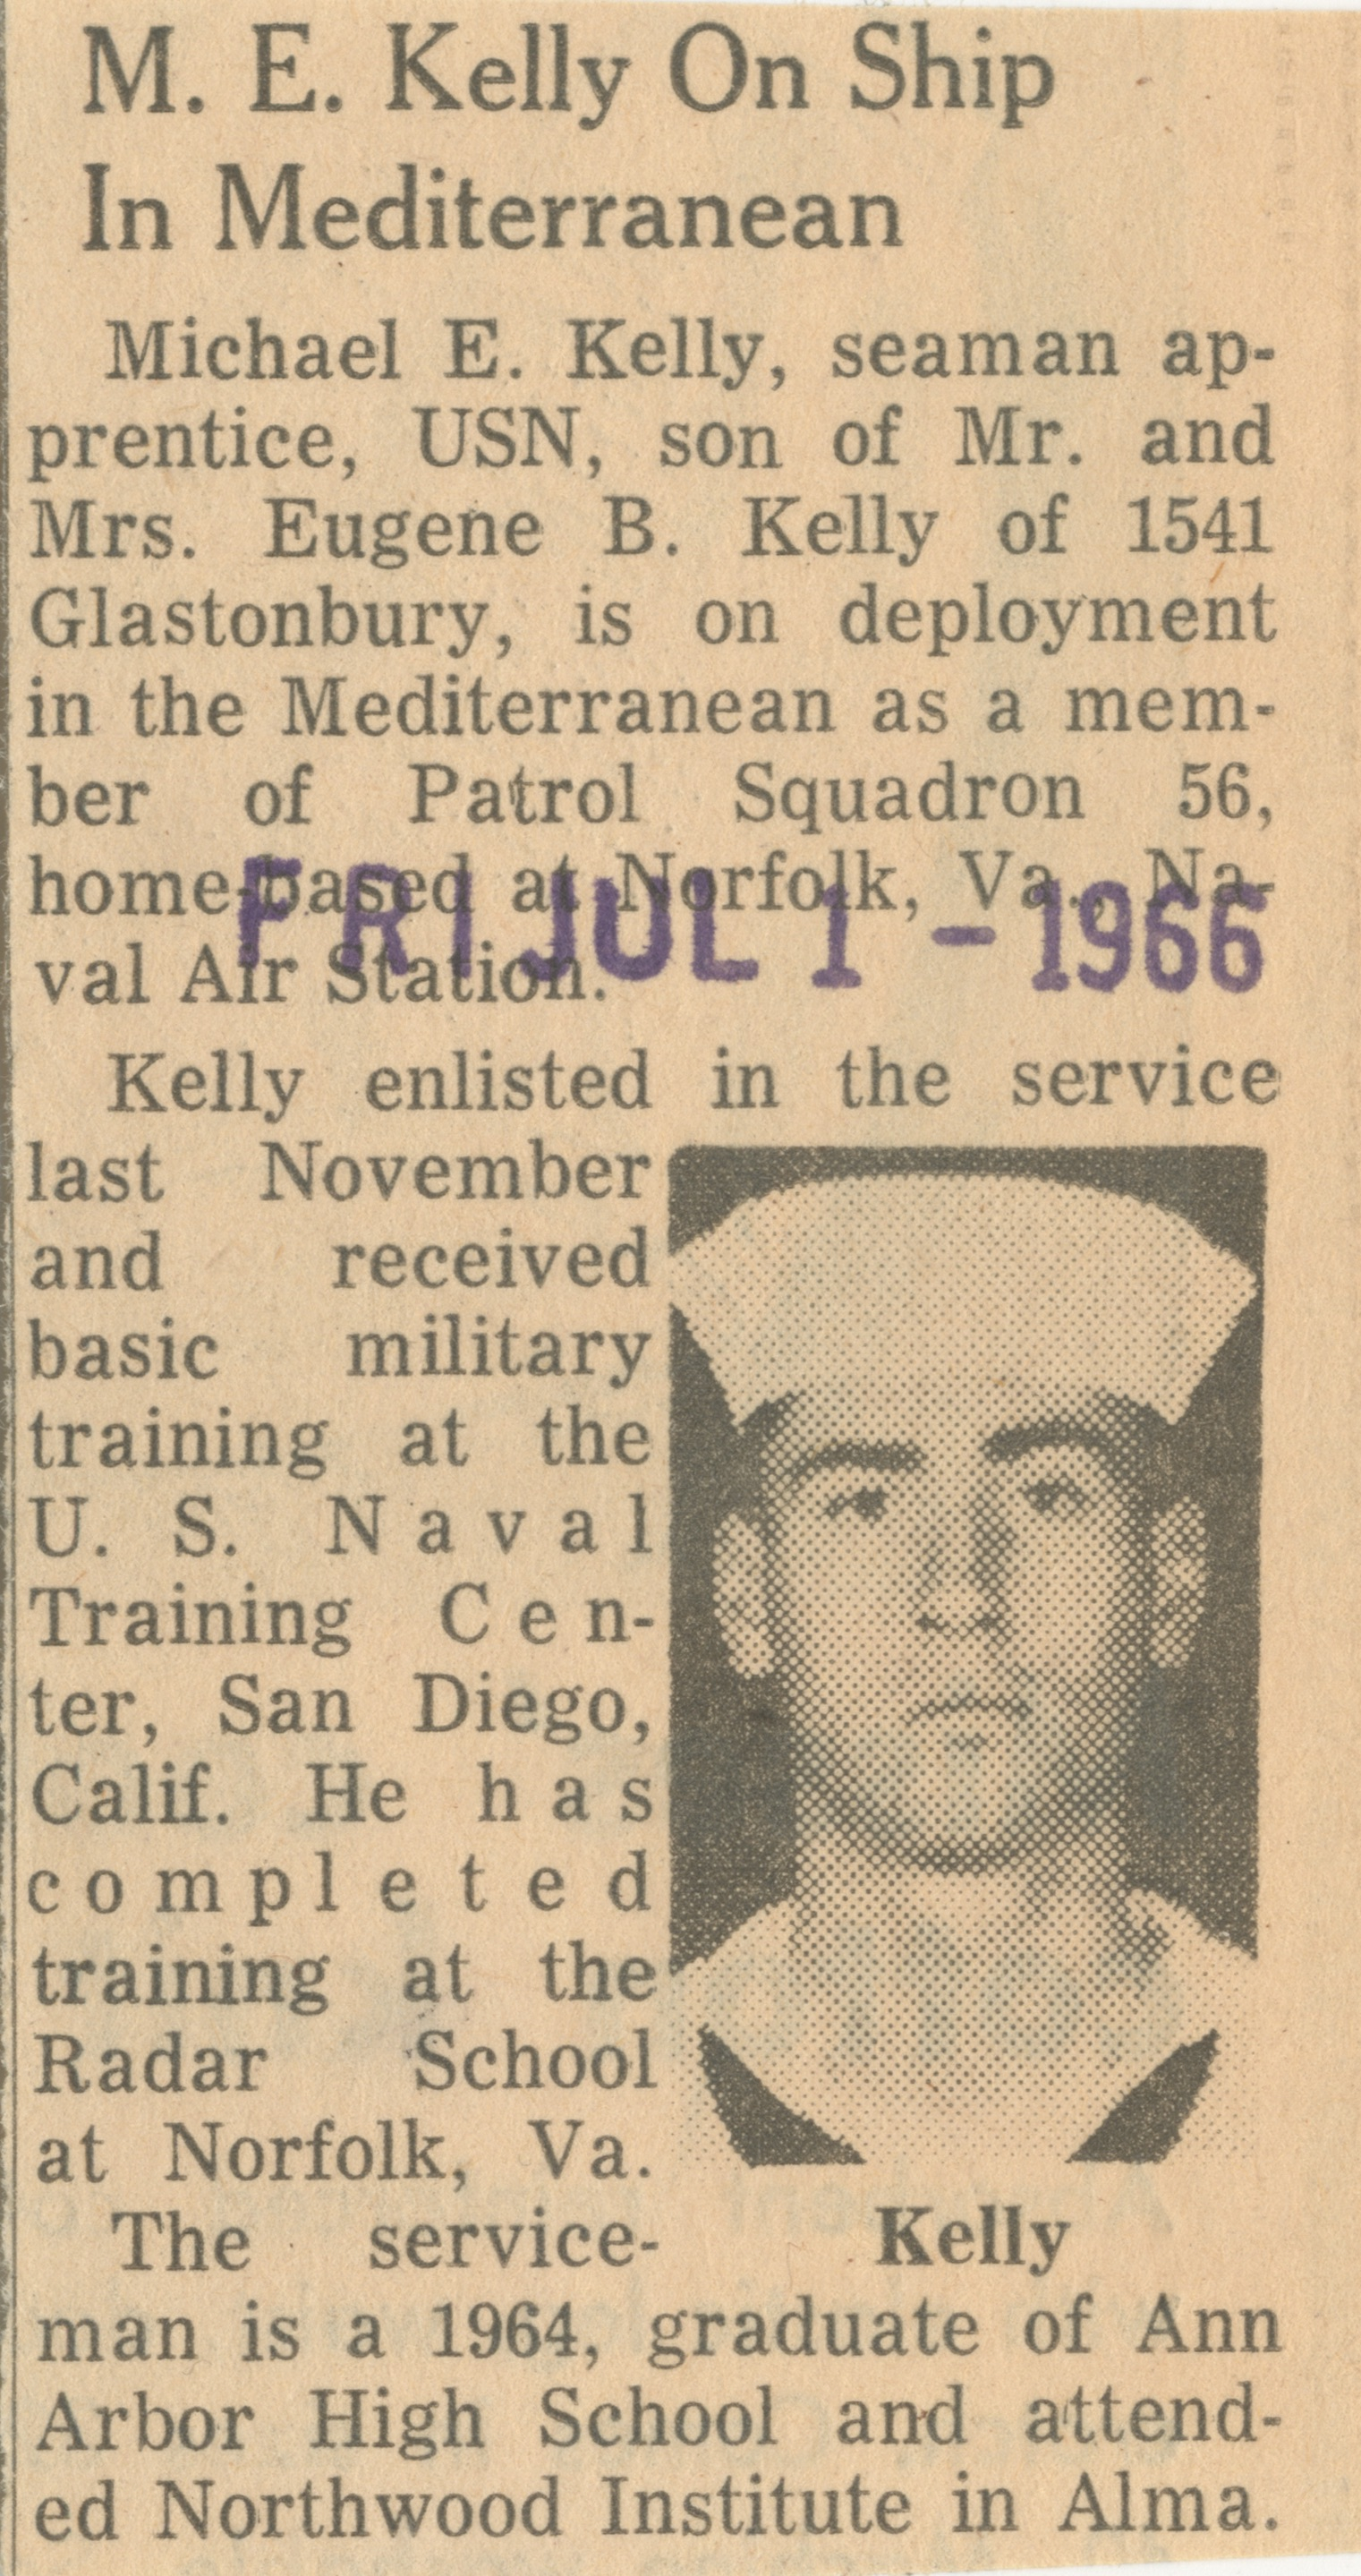 M. E. Kelly On Ship In Mediterranean image